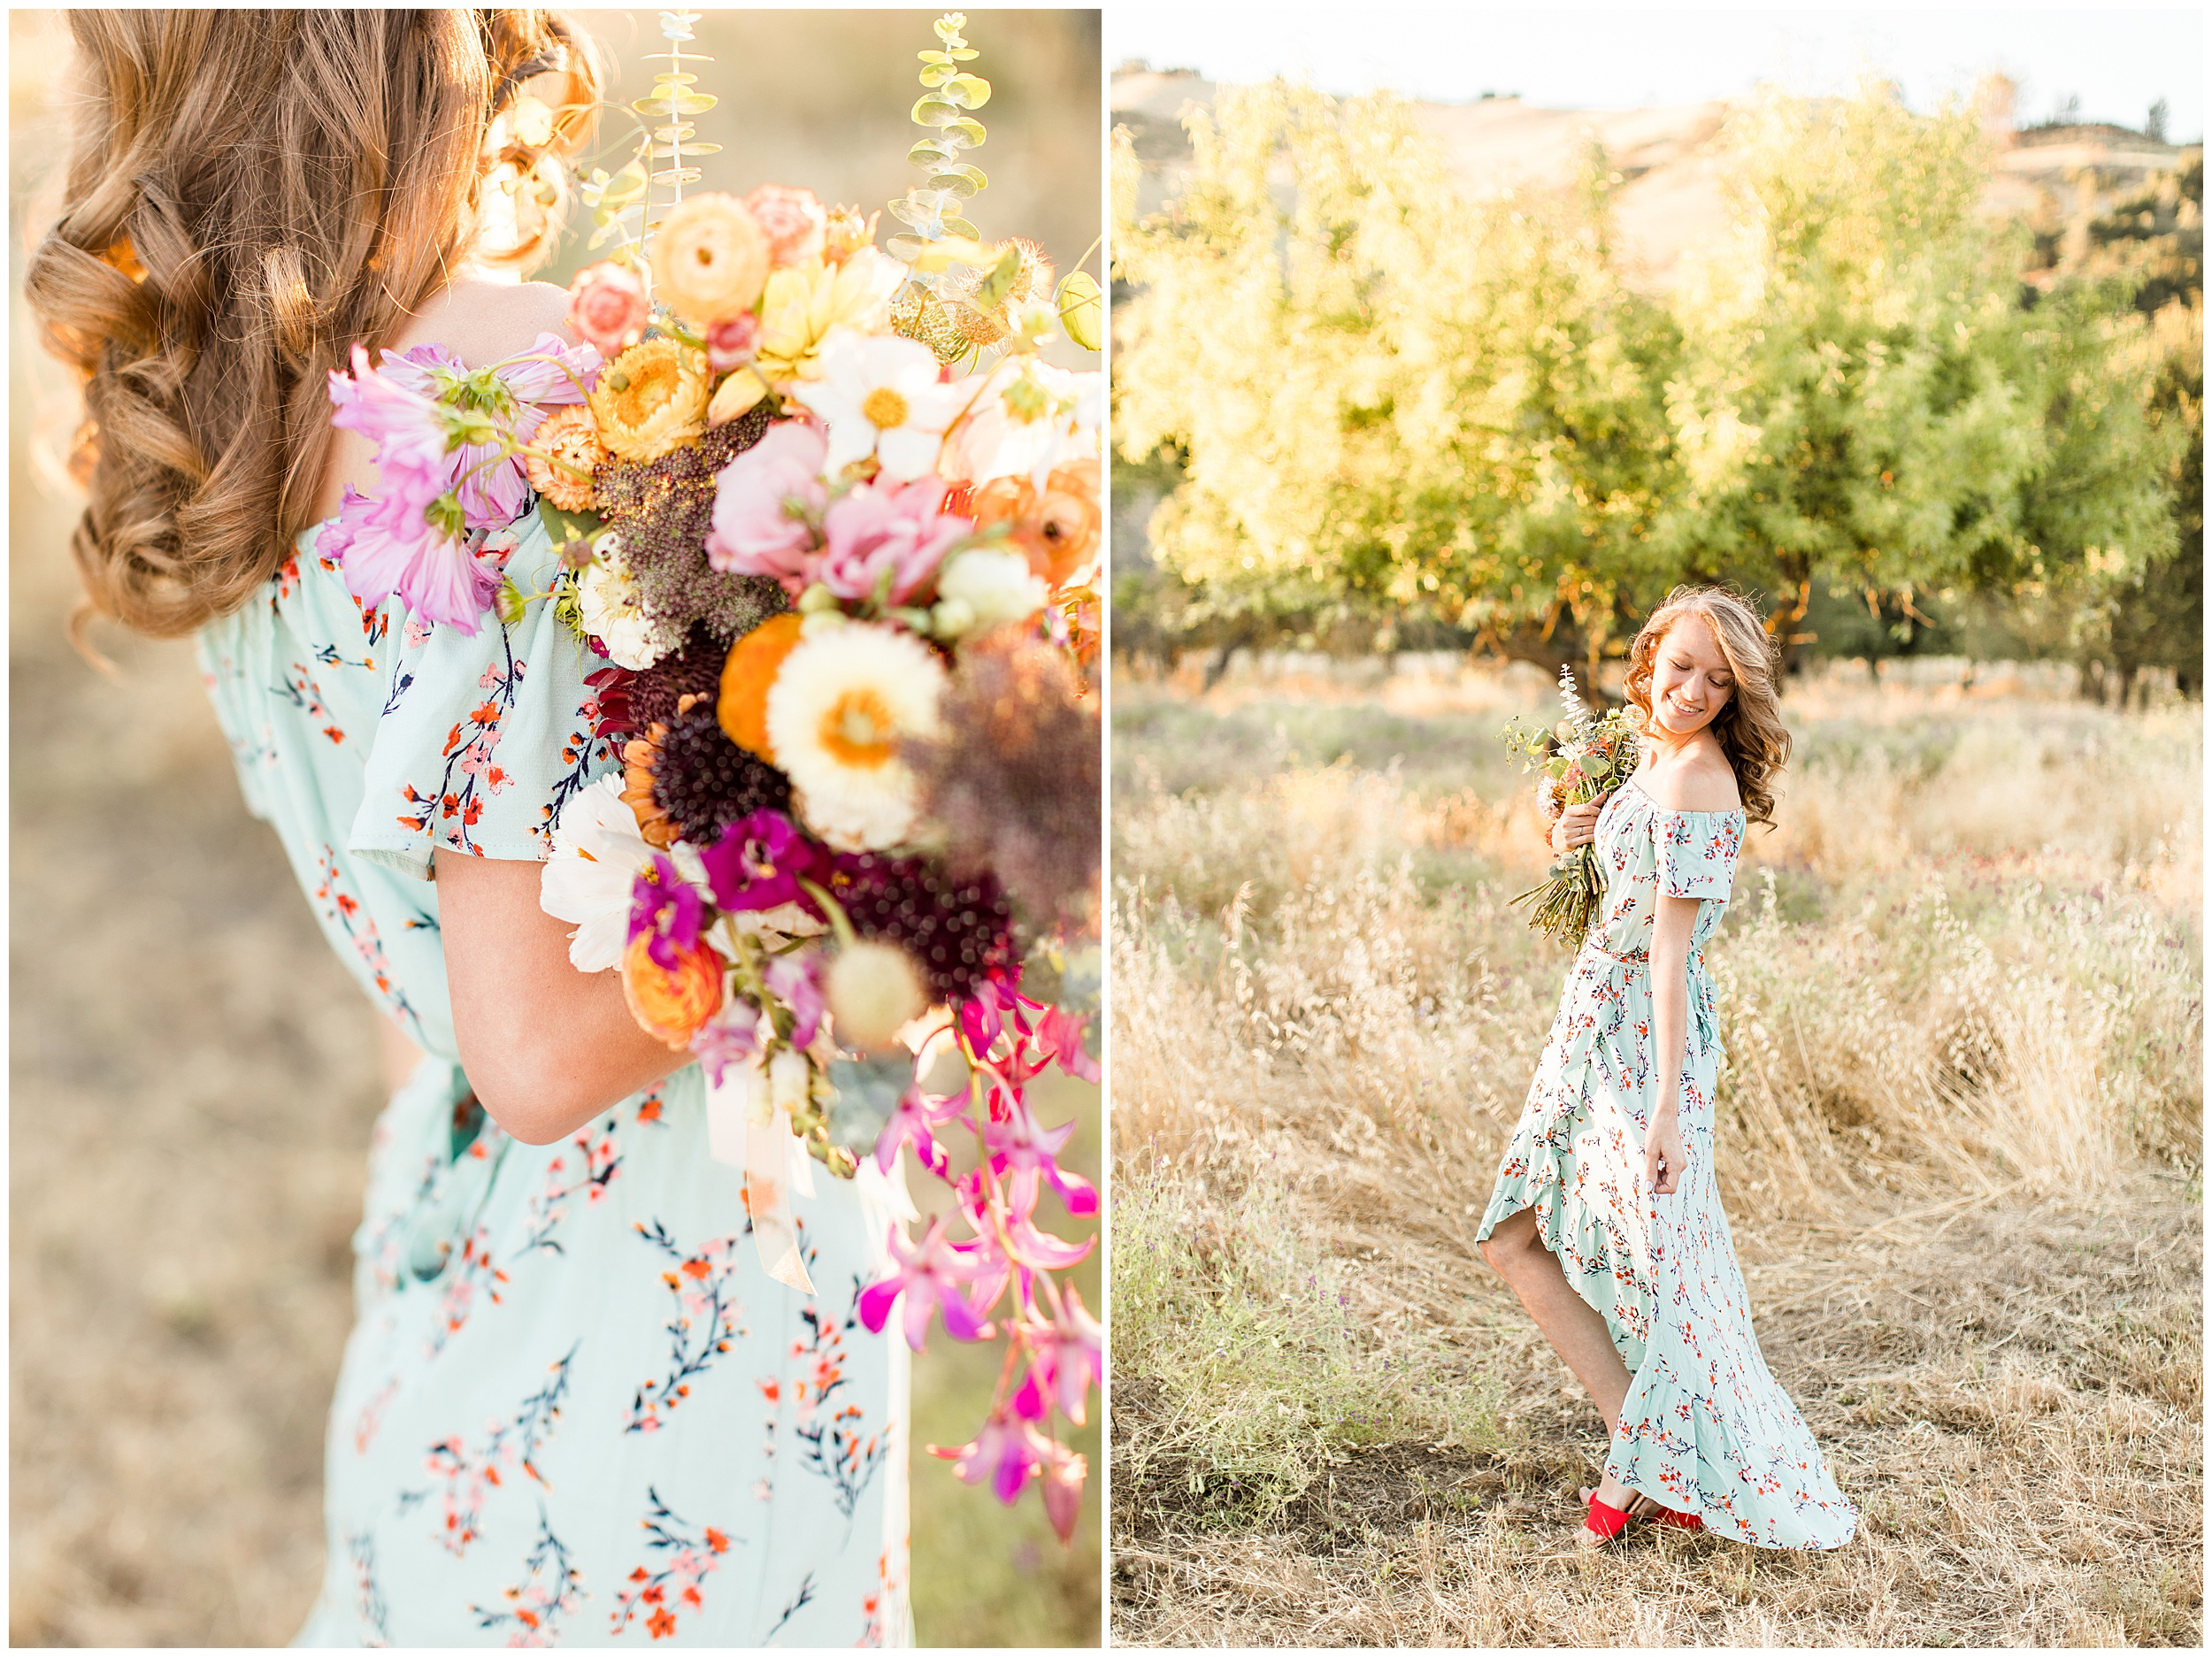 2019 bay area wedding photographer colorful florals flowers styled engagement session Angela Sue Photography_0018.jpg